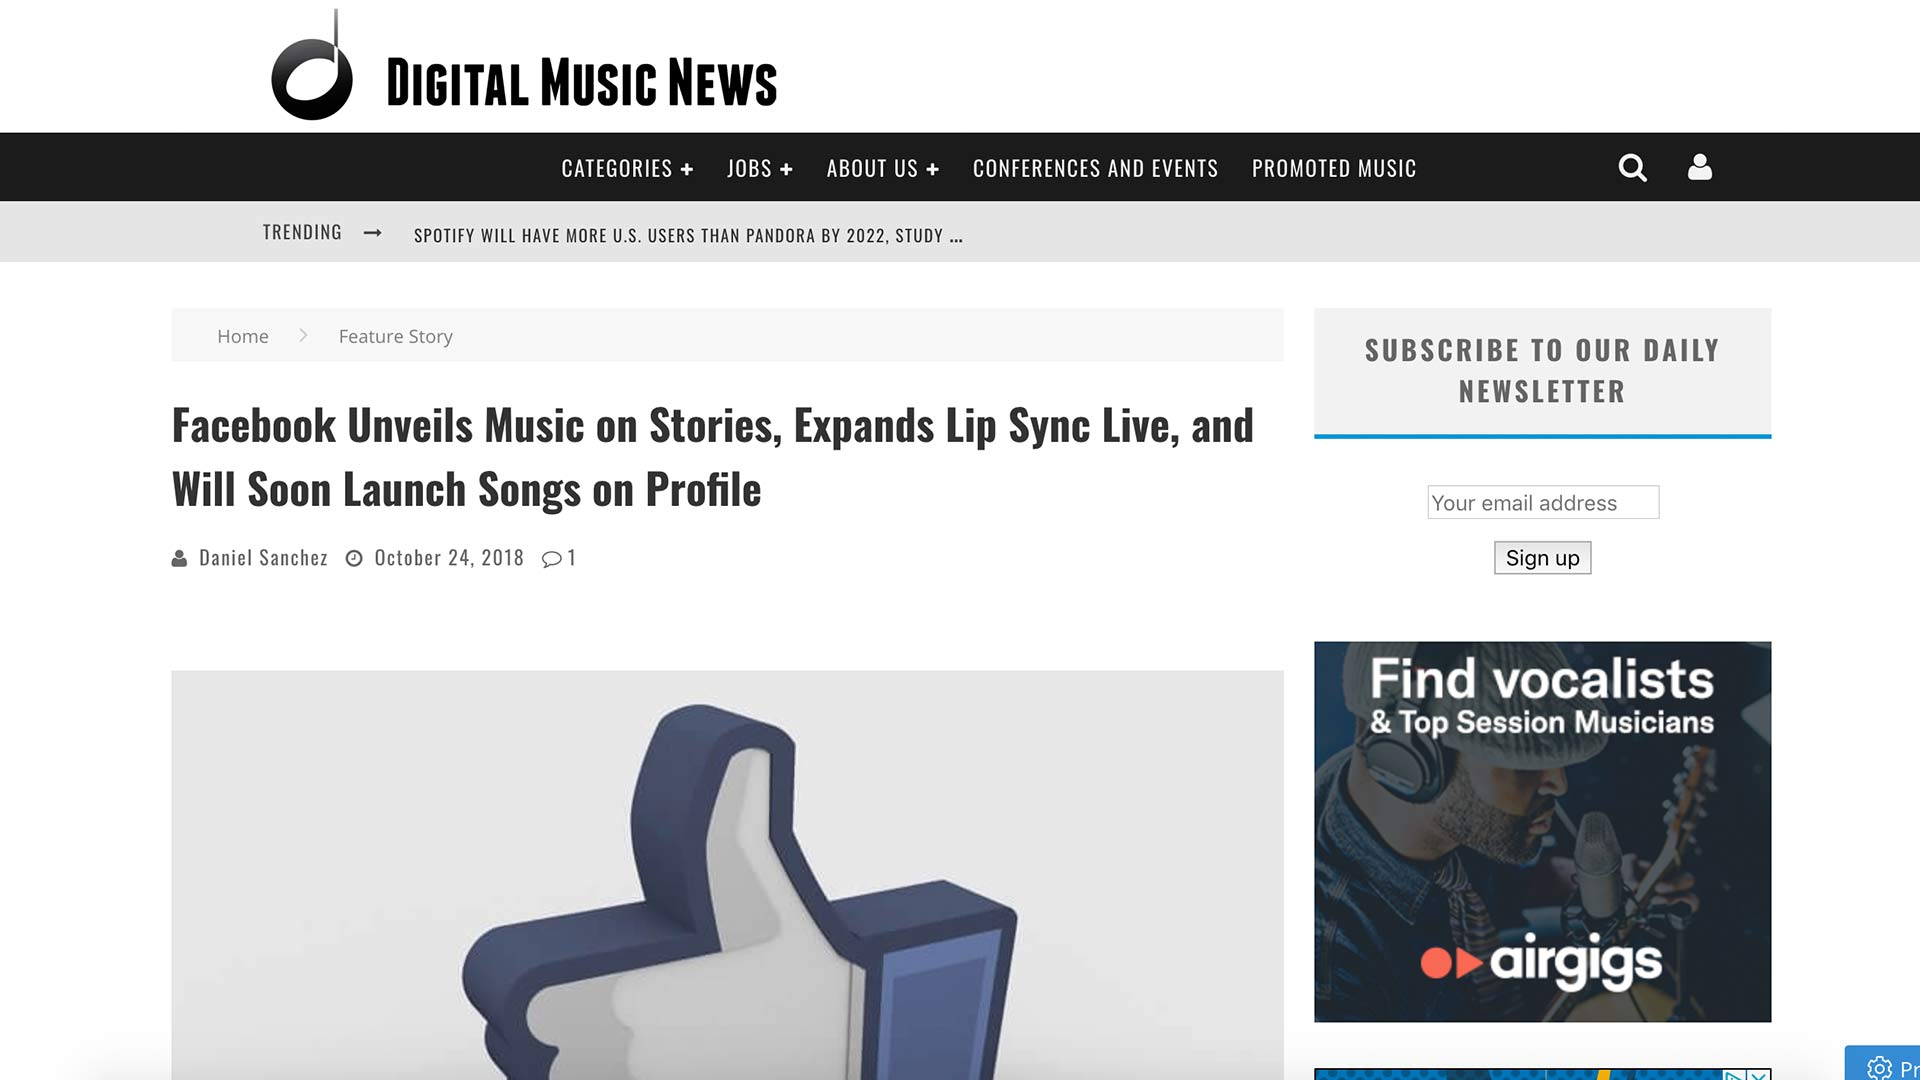 Fairness Rocks News Facebook Unveils Music on Stories, Expands Lip Sync Live, and Will Soon Launch Songs on Profile